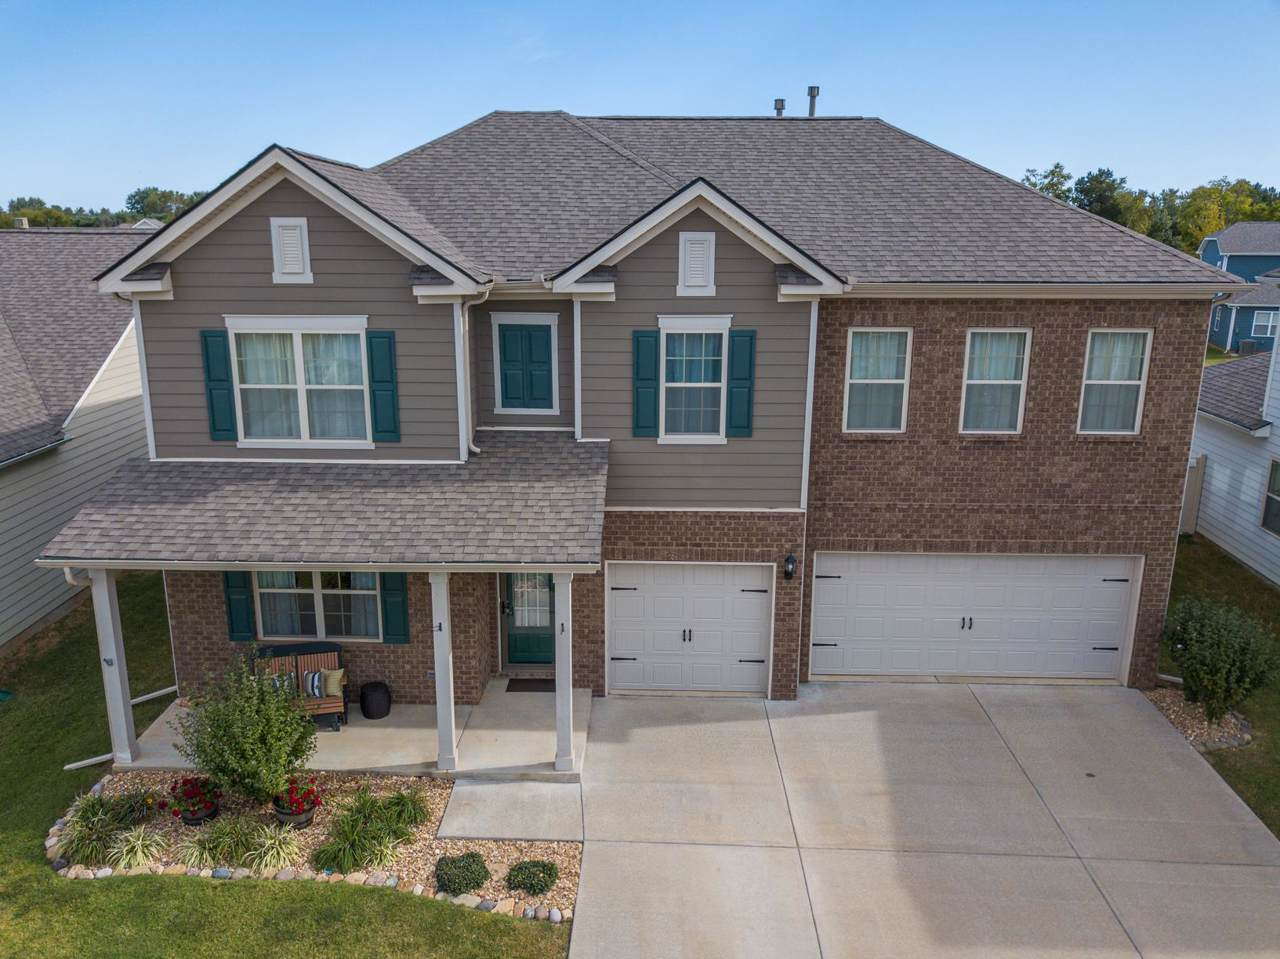 6419 Birchtree Dr - Photo 1